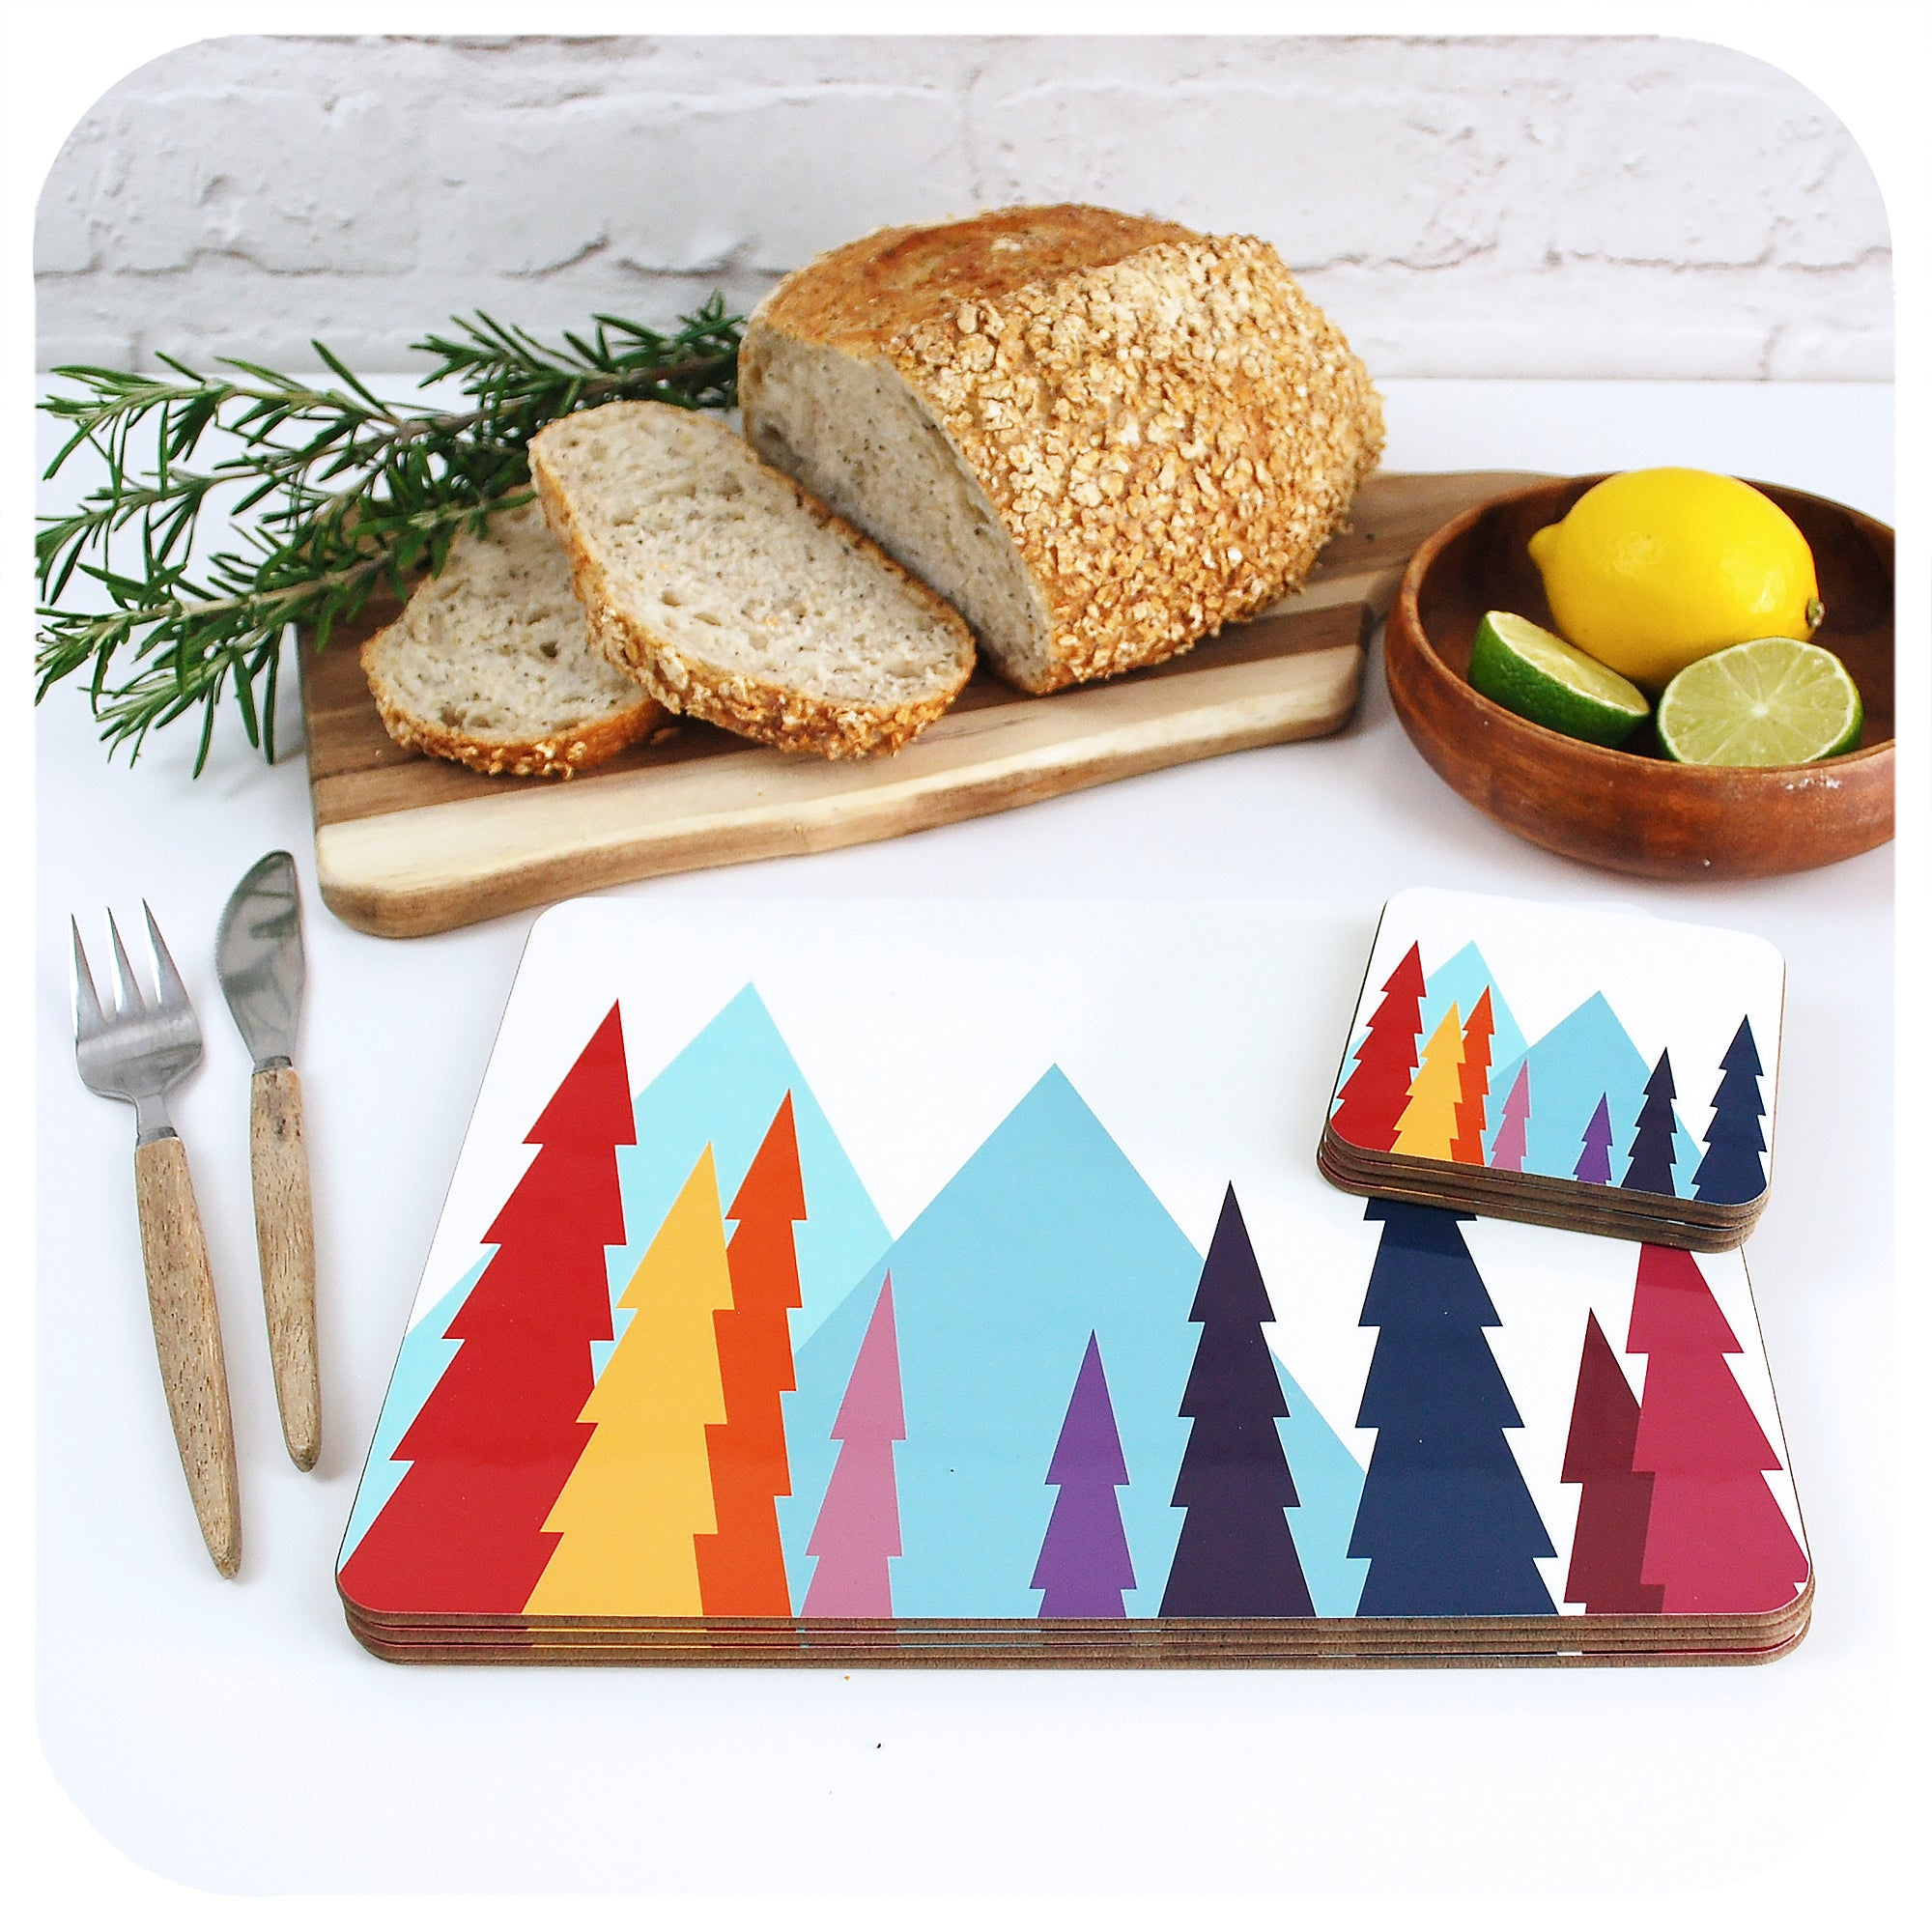 Nordic style tableware, matching placemats and coasters | The Inkabilly Emporium